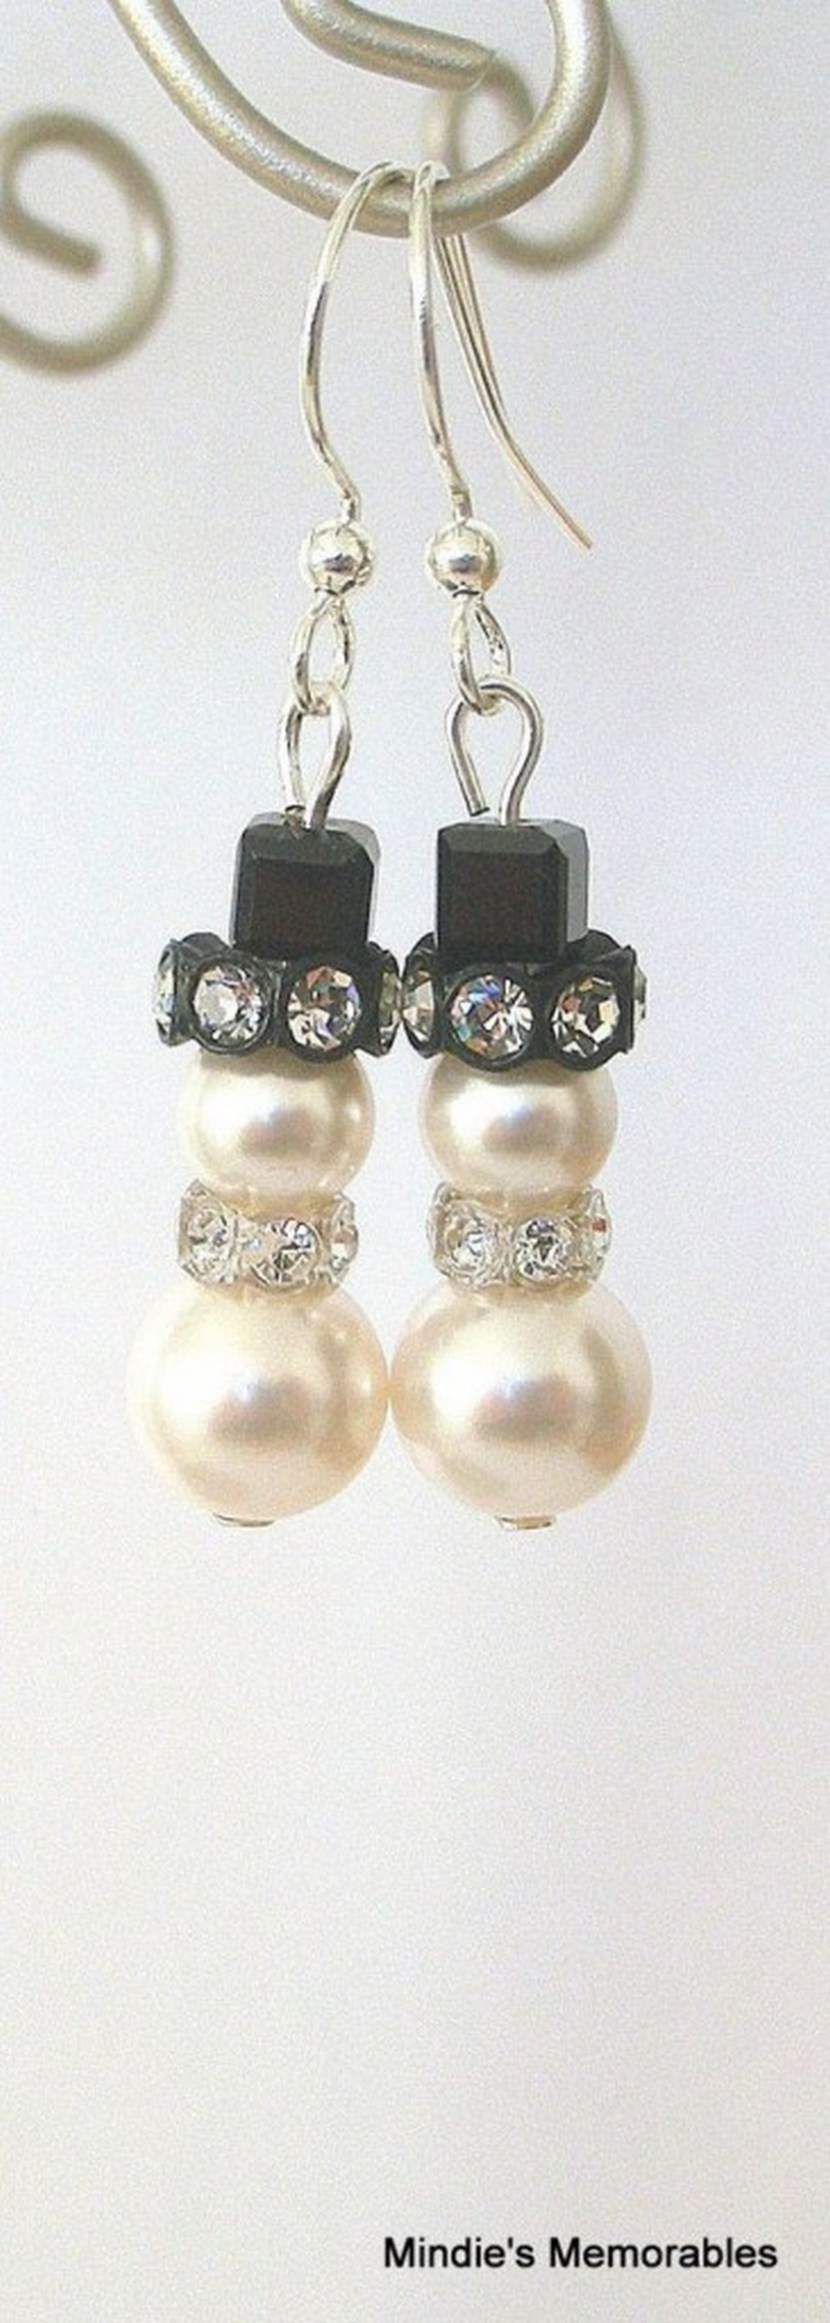 Little snowman earrings, Swarovski pearl and crystal white snowmen earrings from Etsy